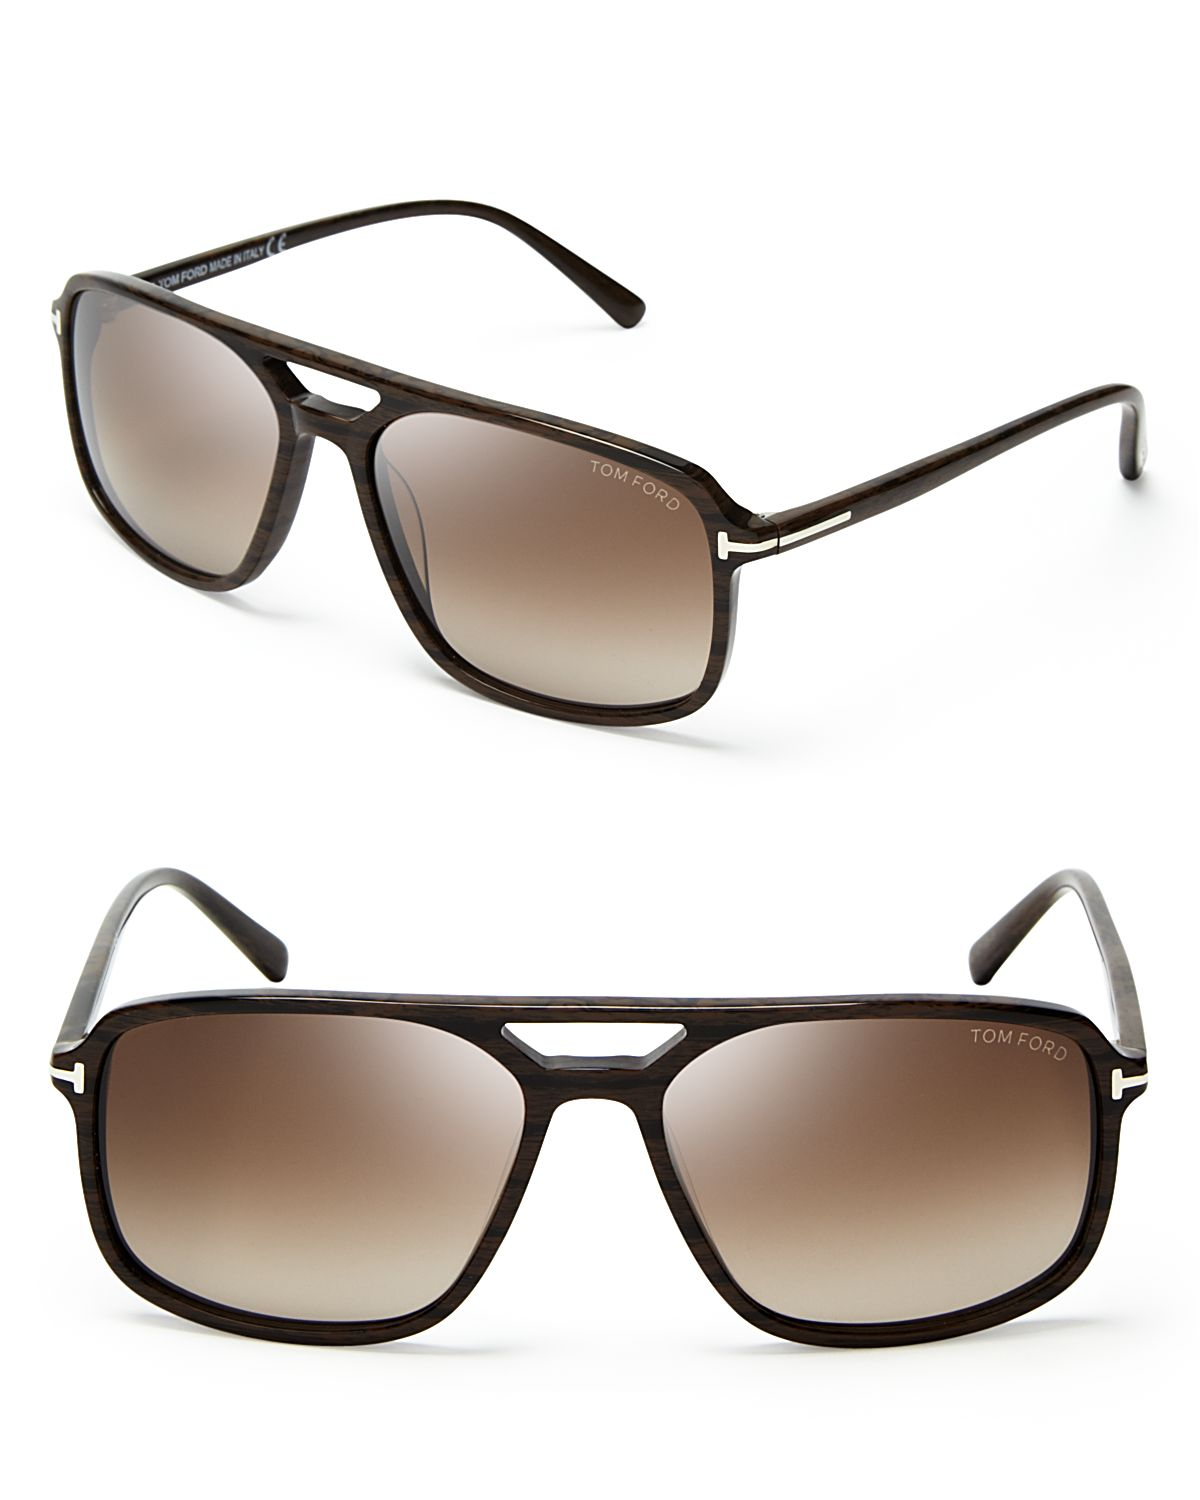 tom ford terry navigator sunglasses in brown for men lyst. Black Bedroom Furniture Sets. Home Design Ideas